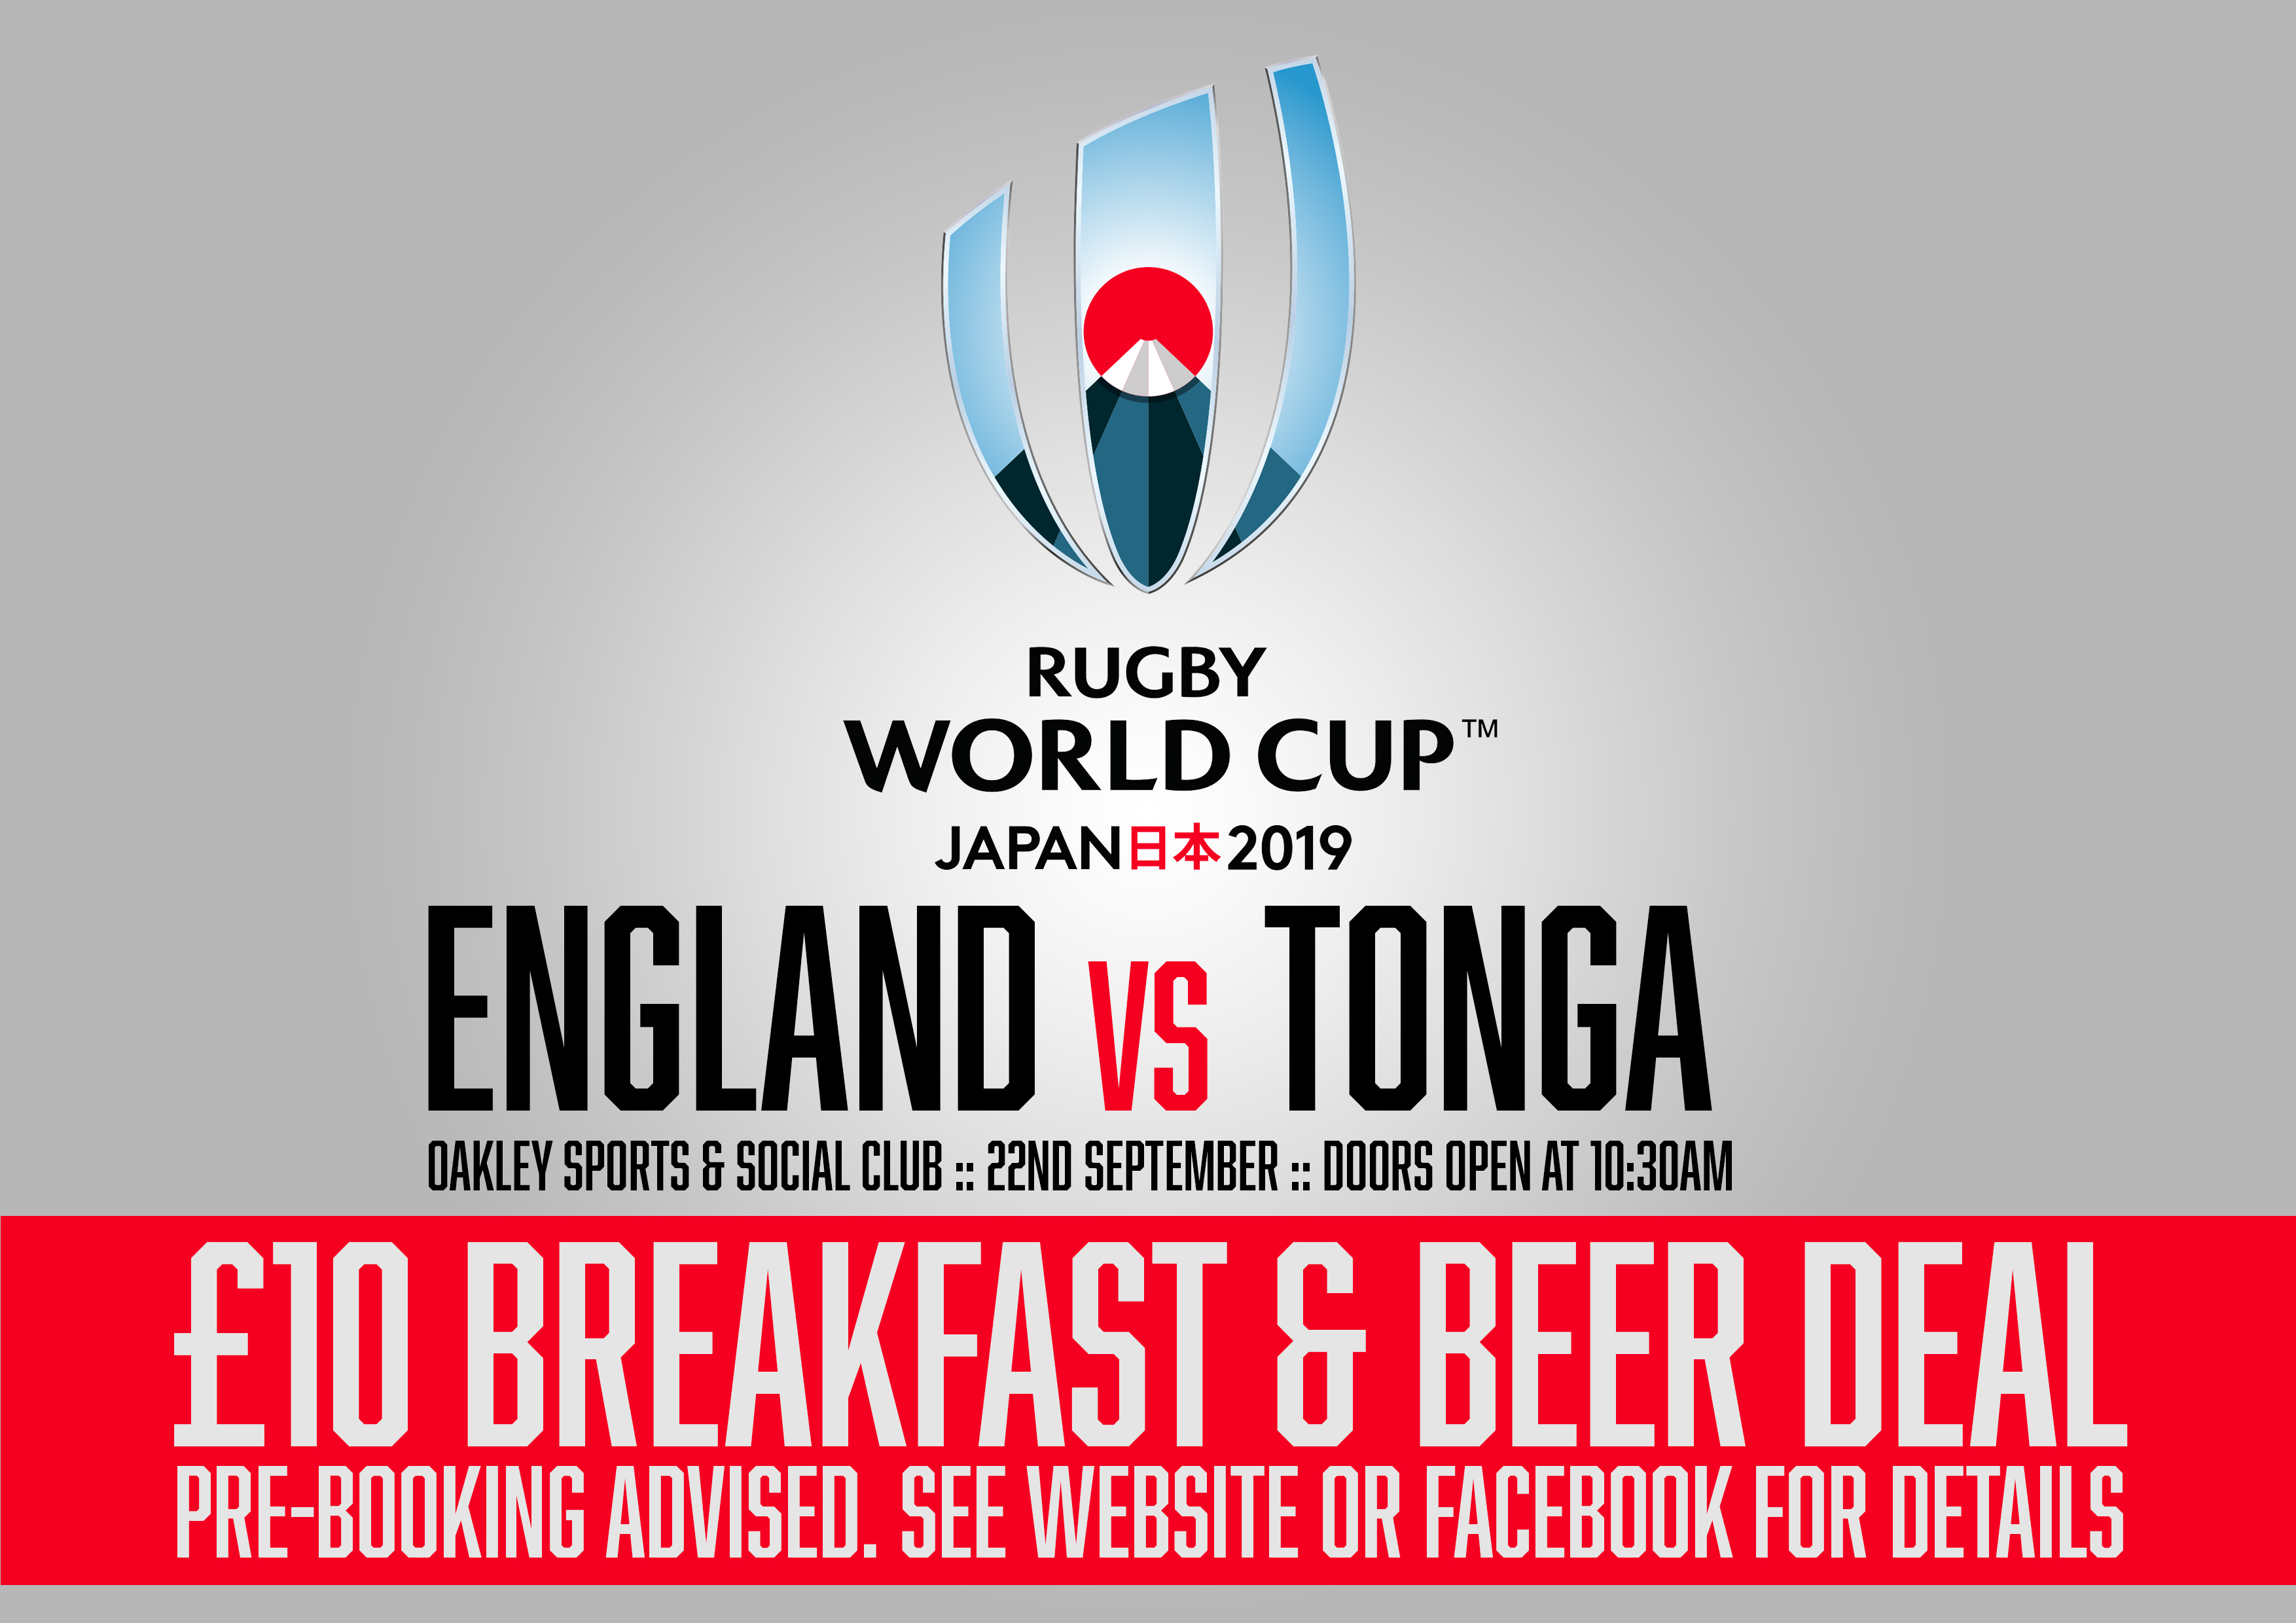 OSSC Rugby Worldcup 2019 - Eng v Tonga.jpg